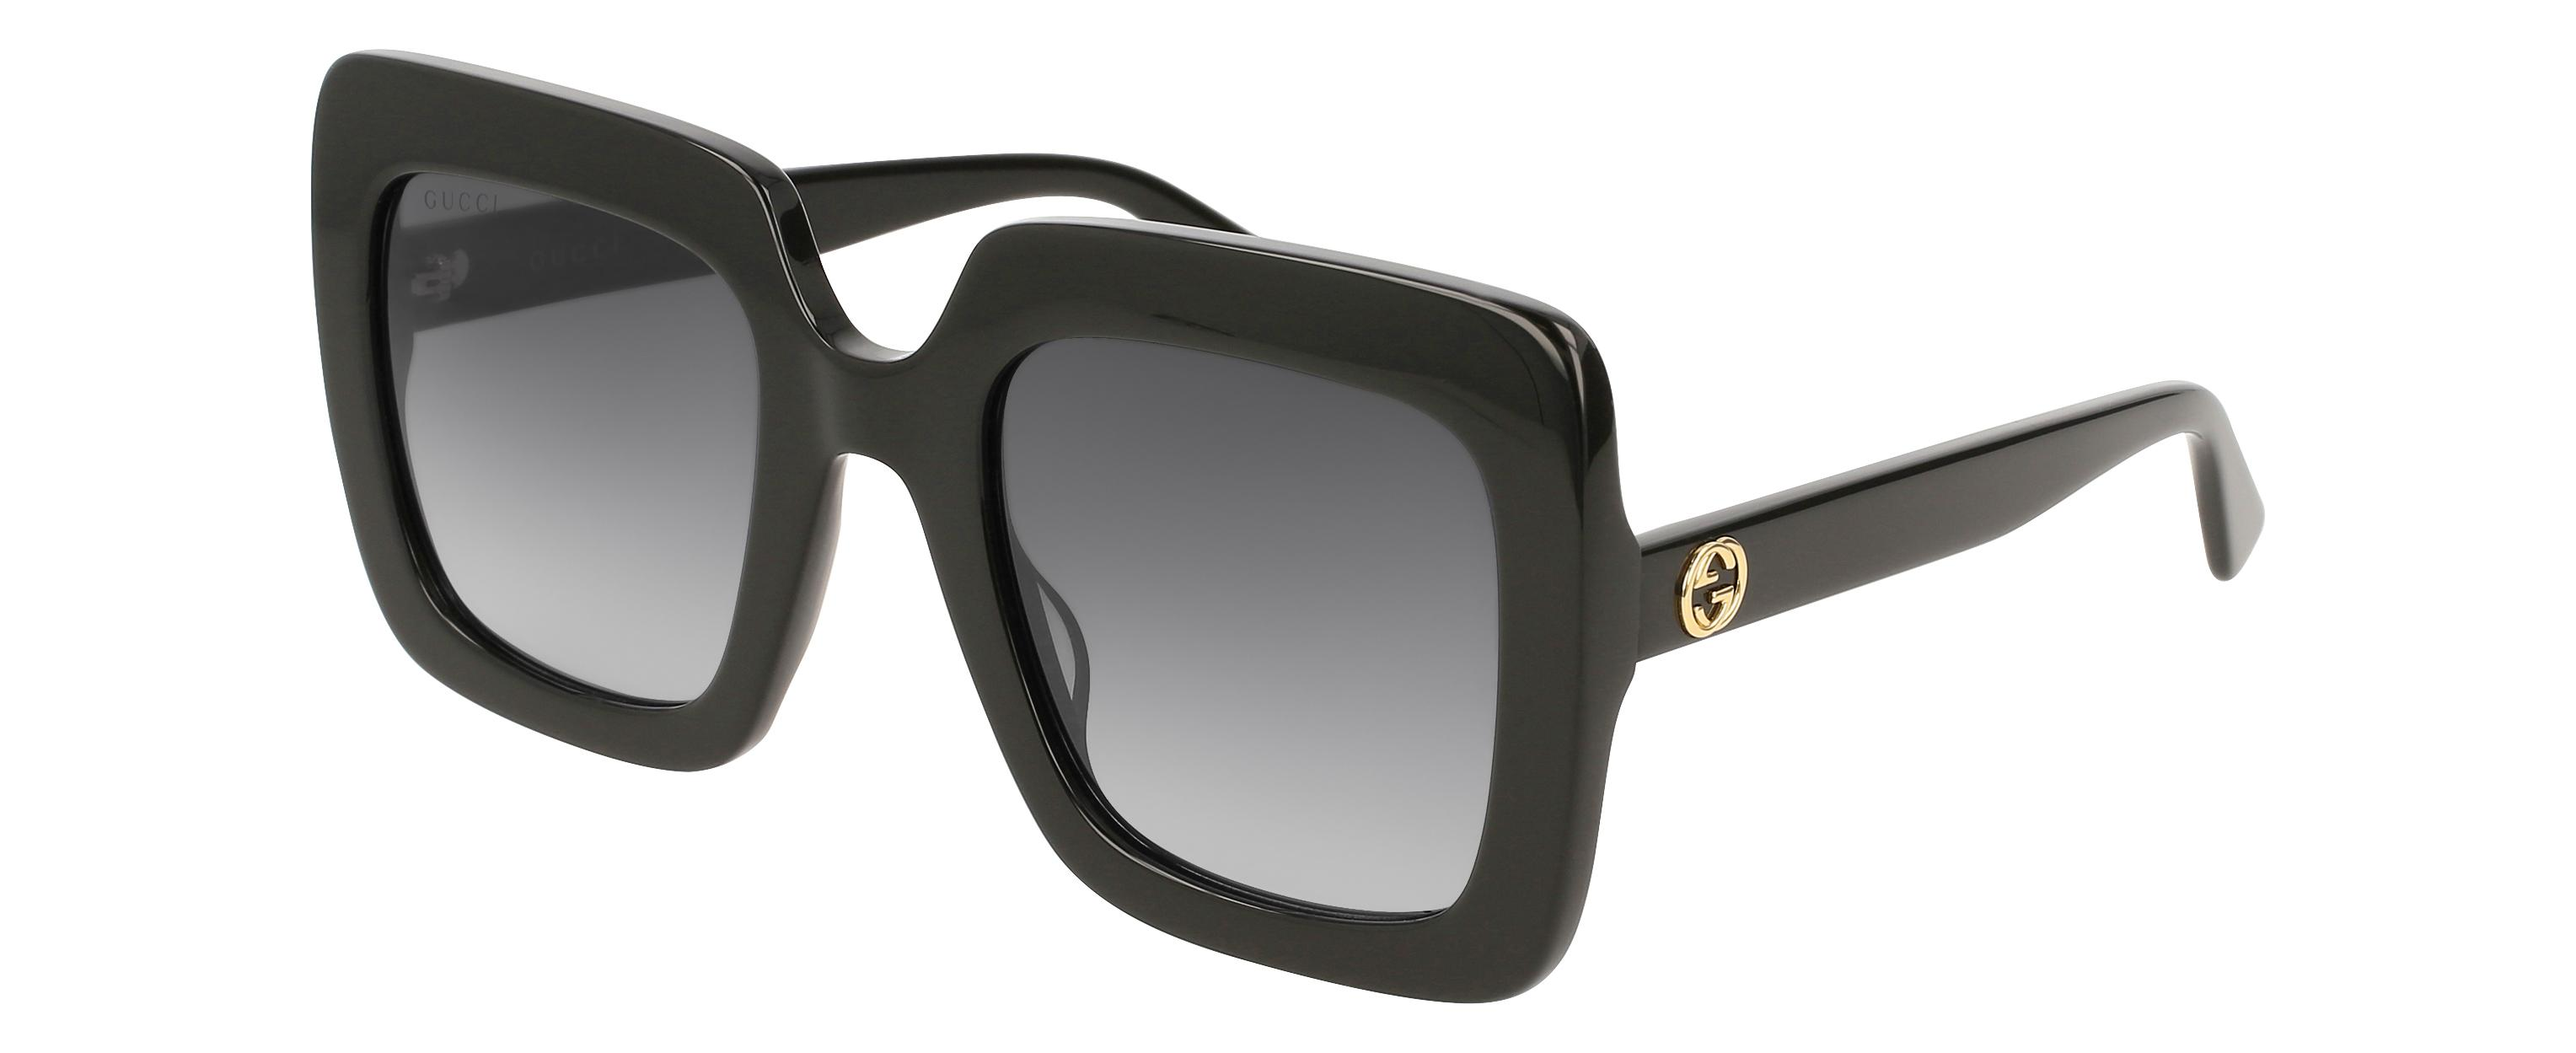 a5529bec11f Lyst - Gucci GG0328 Rectangle Sunglasses in Black